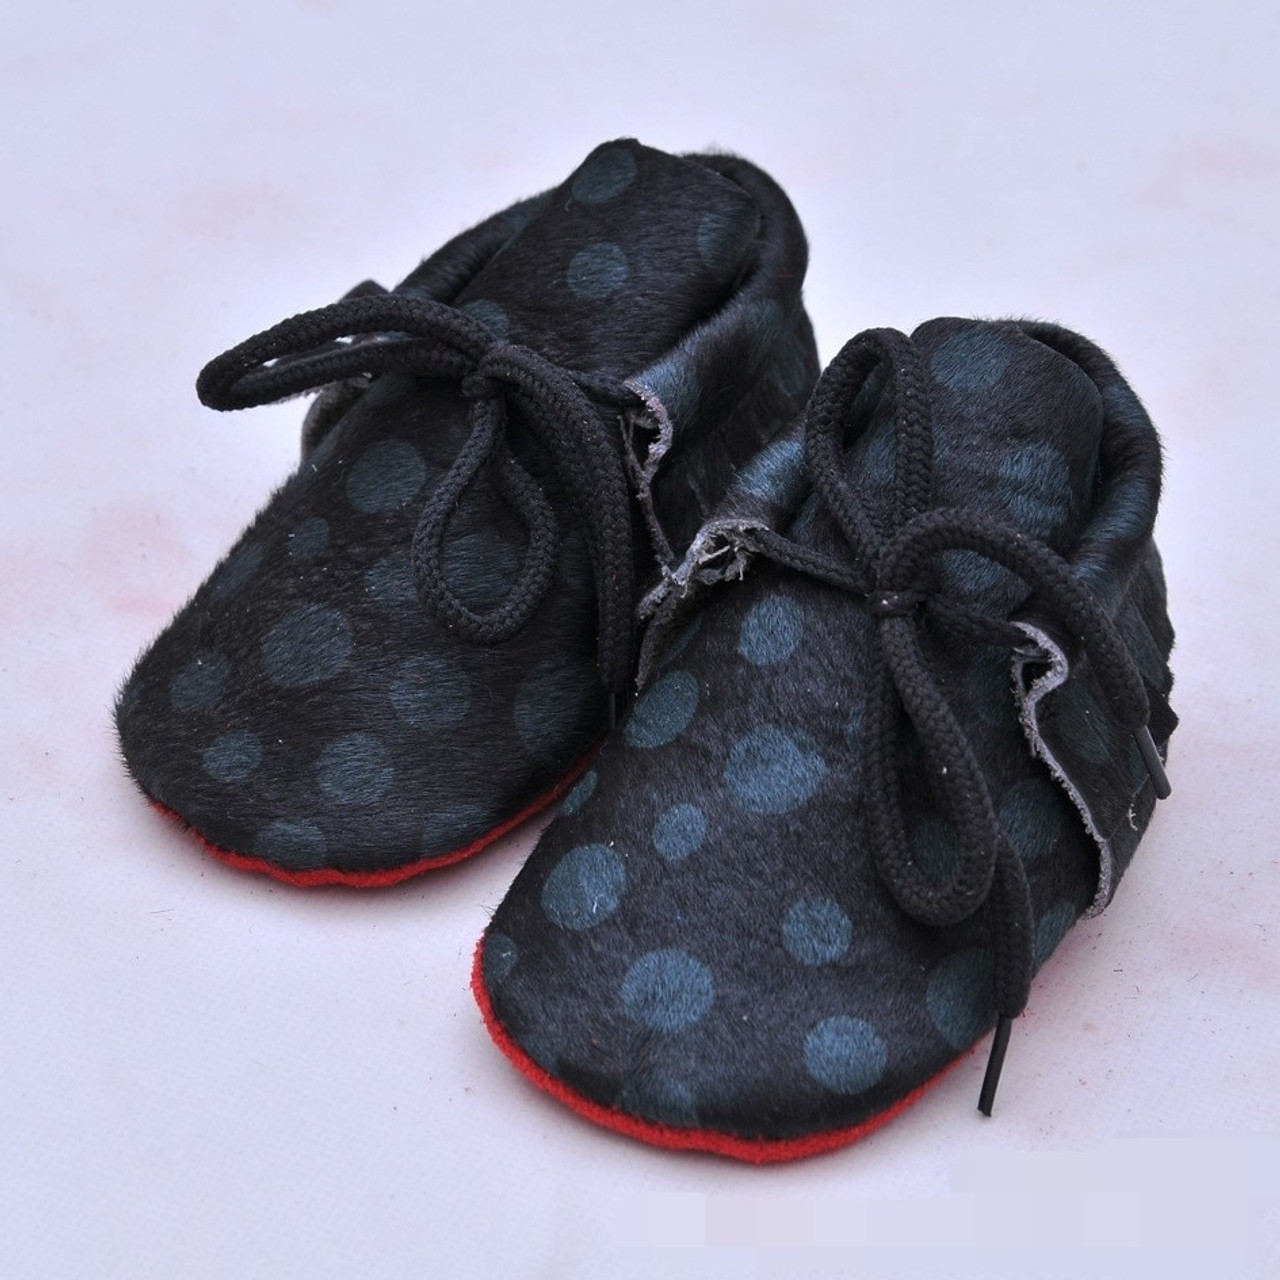 6c8a523af1e3 ... 20colors New Genuine Leather Baby Moccasins Shoes lace up leopard red  bottom sole Baby Shoes Newborn ...